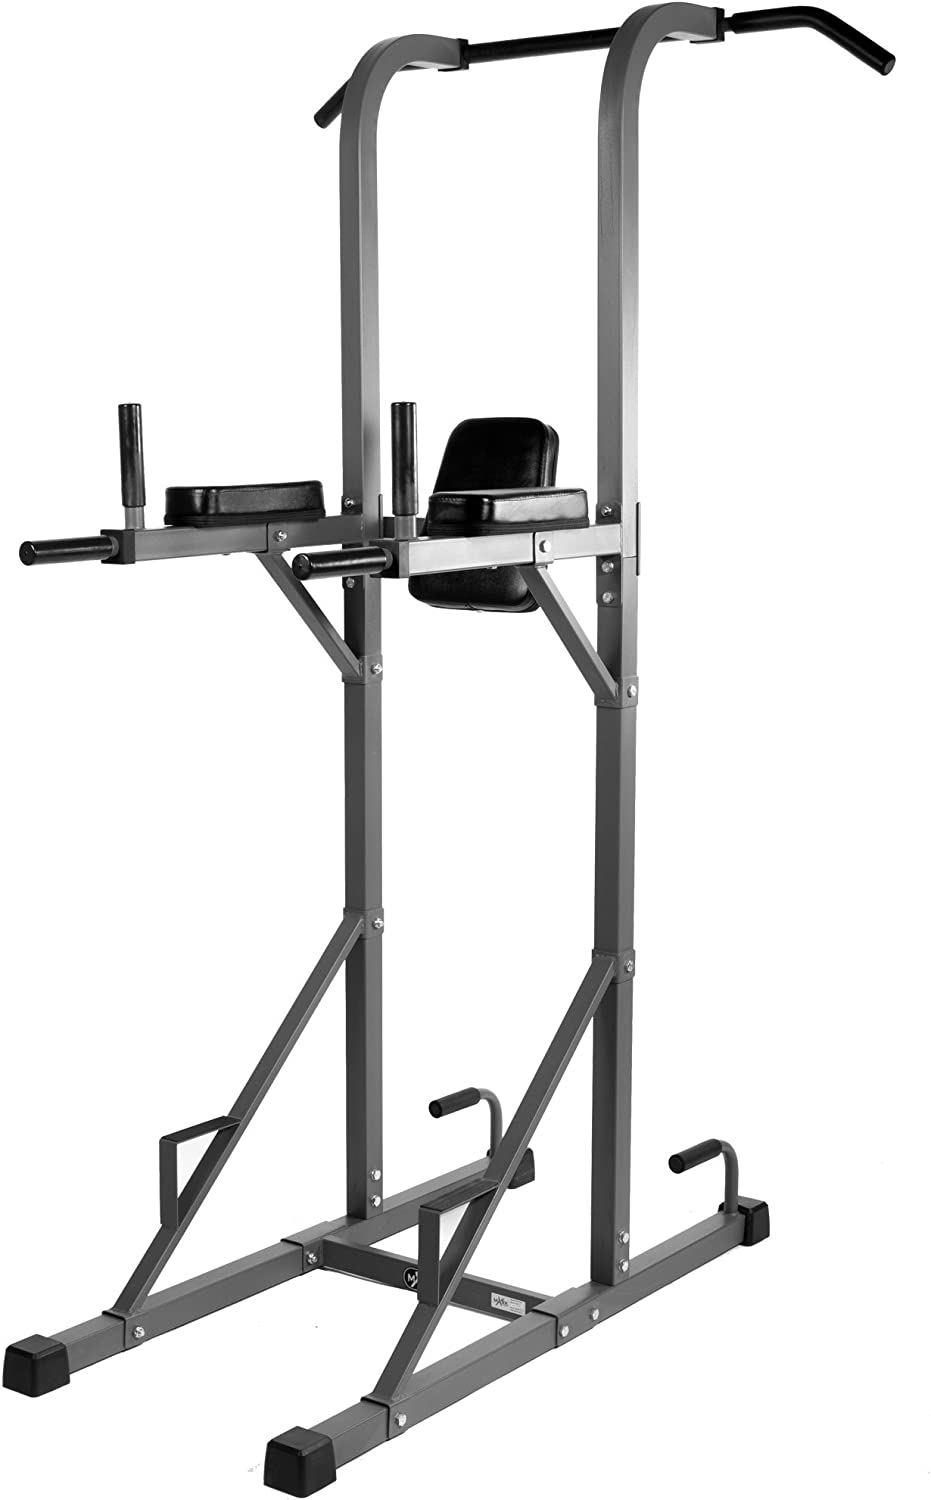 XMark XM-4434 Review – Multi-Function Power Tower For Upper Body Exercises